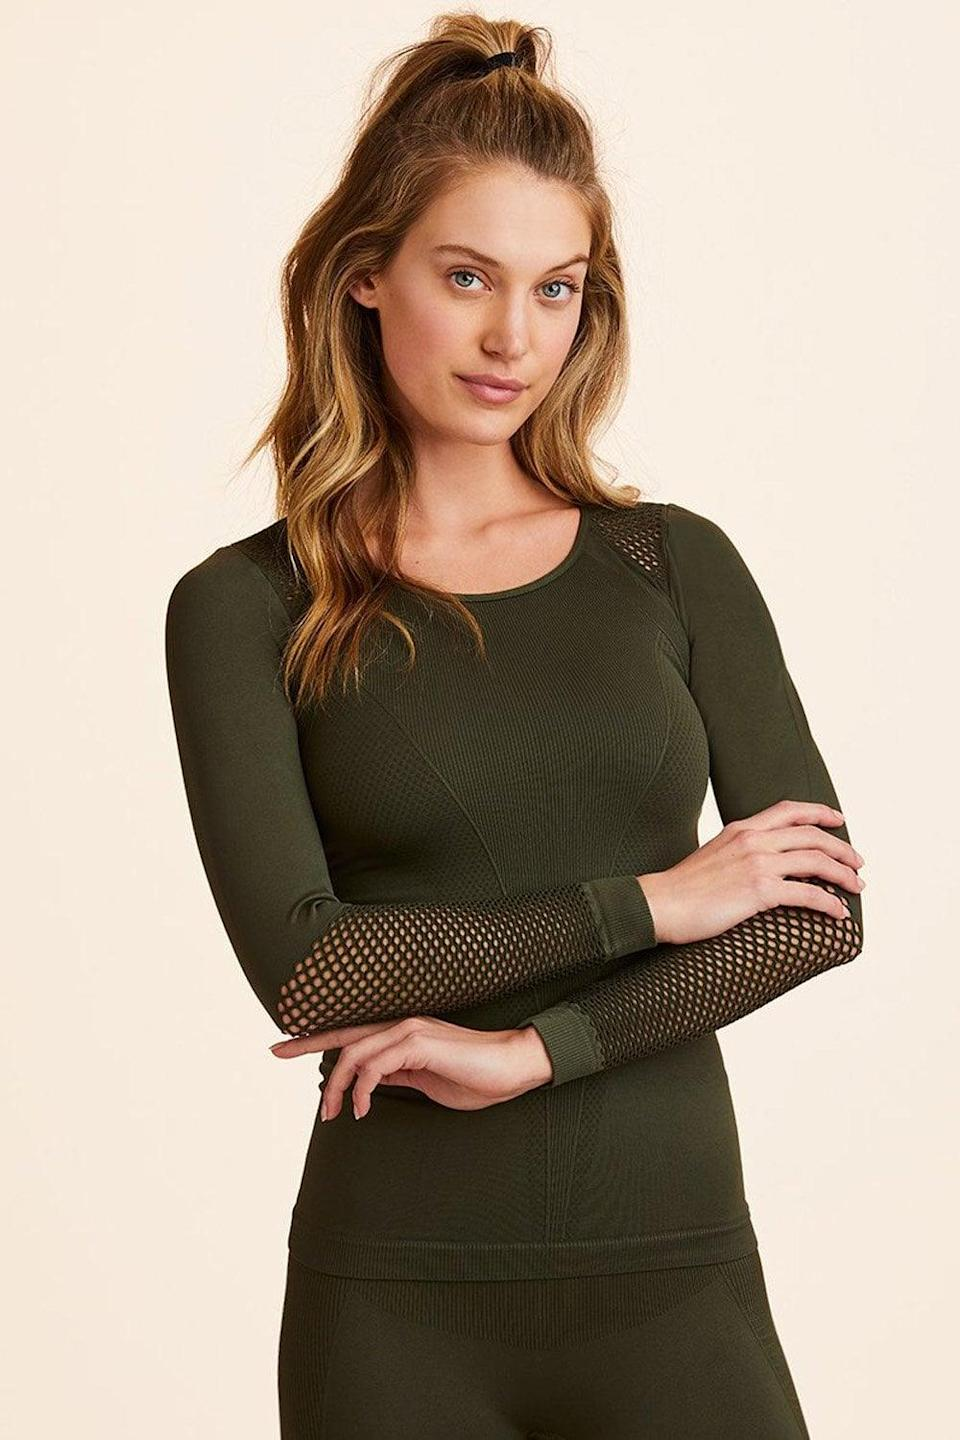 """<p>When asked what style top she recommends, Duckstein explained that she likes tees that complement her waist. """"This [one] is fitted without being too tight,"""" Duckstein said. The signature mesh detailing on the <span>Alala Essential Seamless Long Sleeve Tee</span> ($80) adds breathability, too.</p>"""